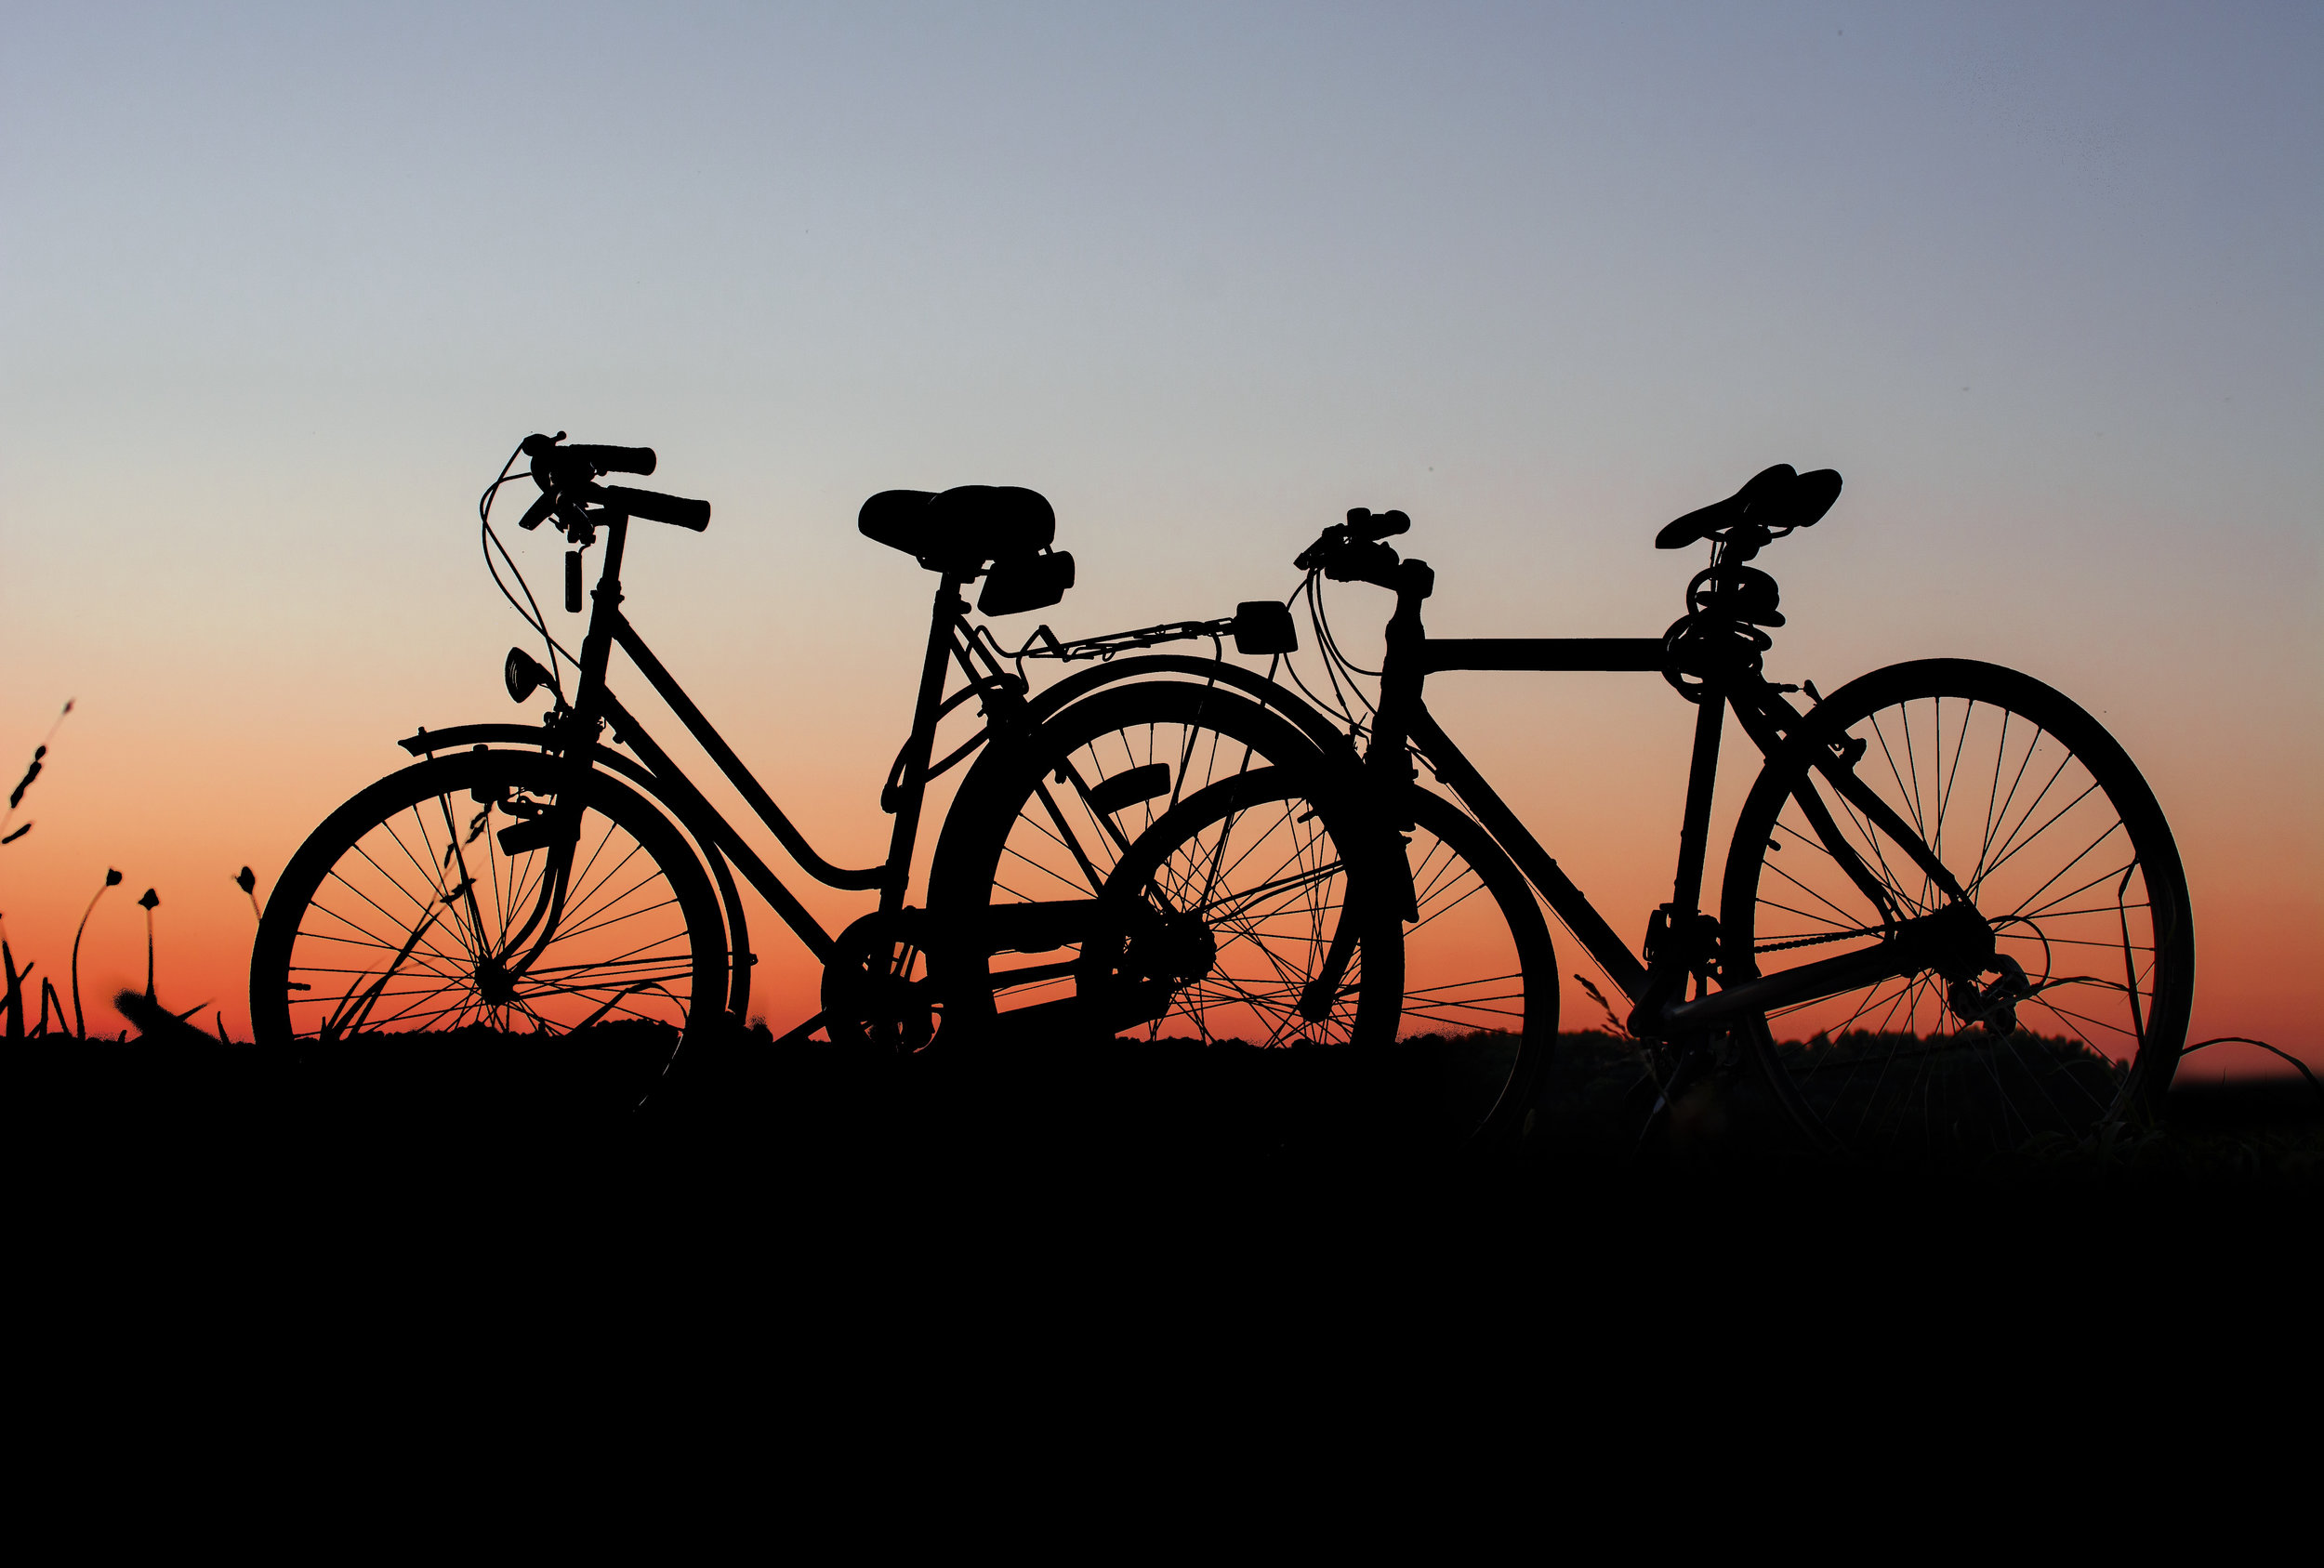 Canva - Silhouette of Bicycle on Grass.jpg